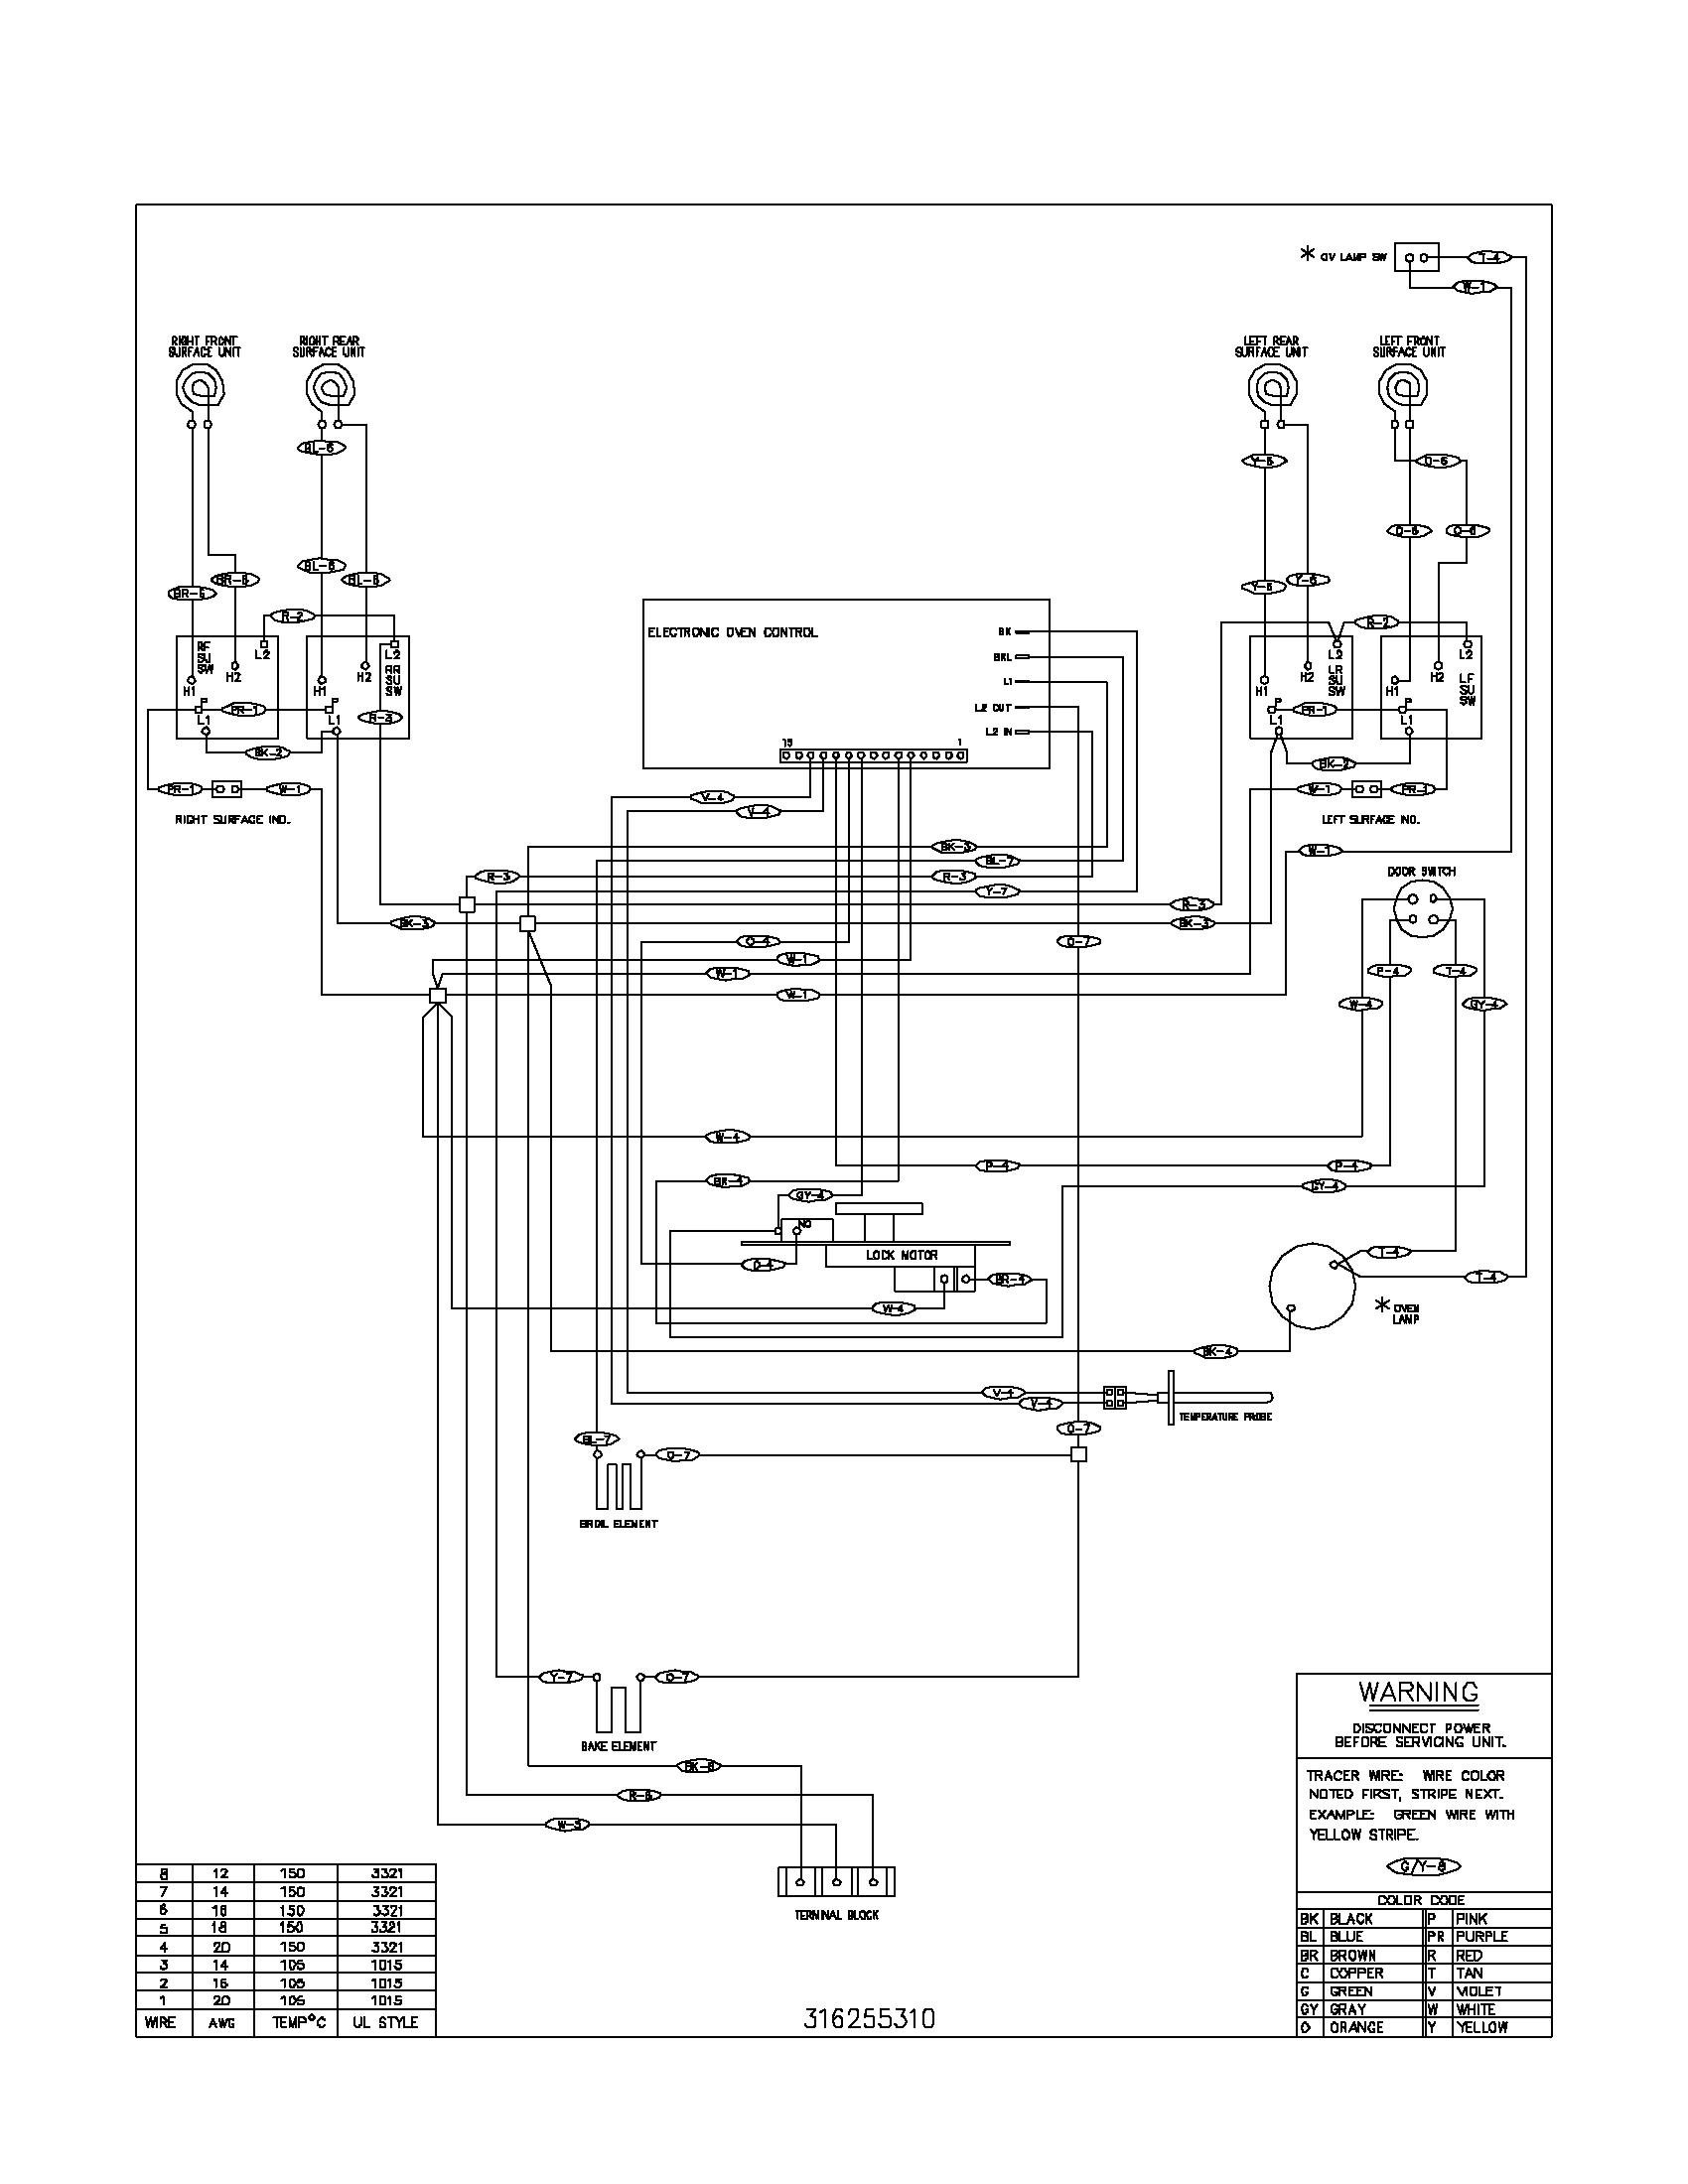 Infinite Switch Wiring Diagram | Wiring Diagram - Infinite Switch Wiring Diagram